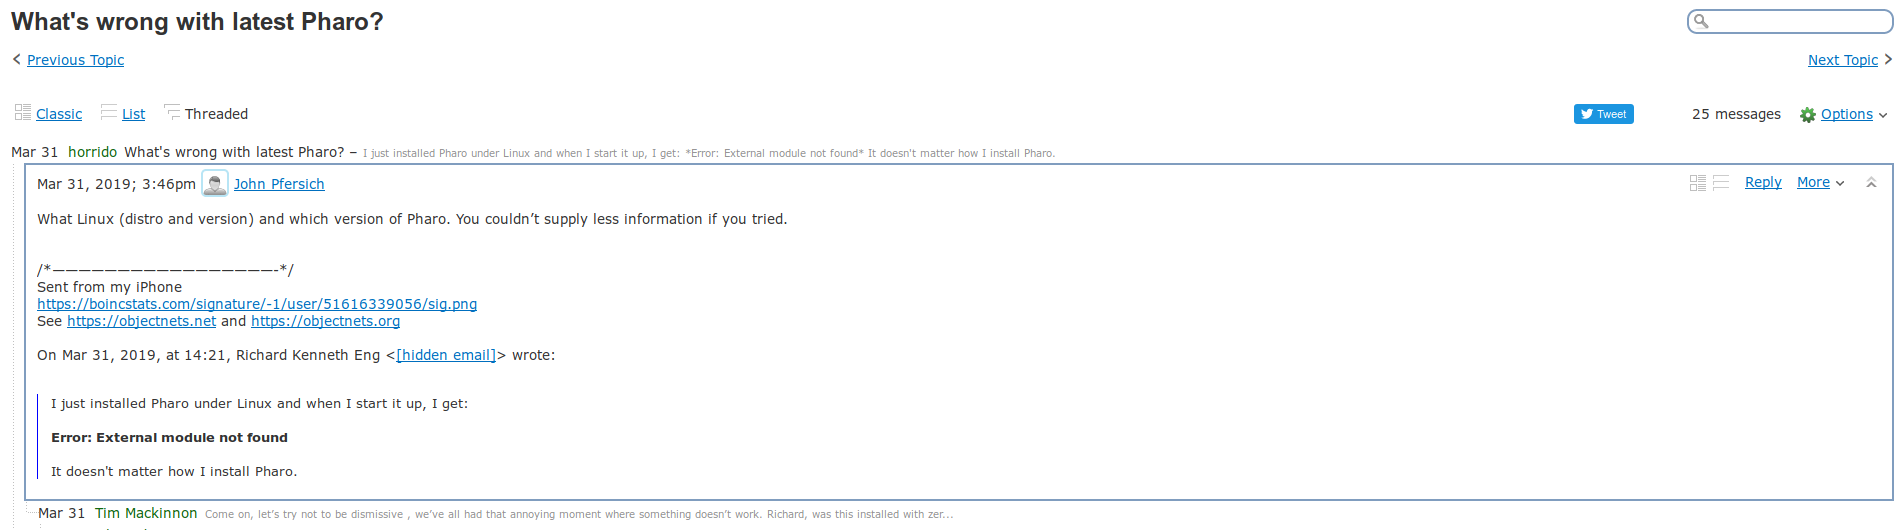 A shot of what it looks like when you open one of the replies in the threaded mailing list view.